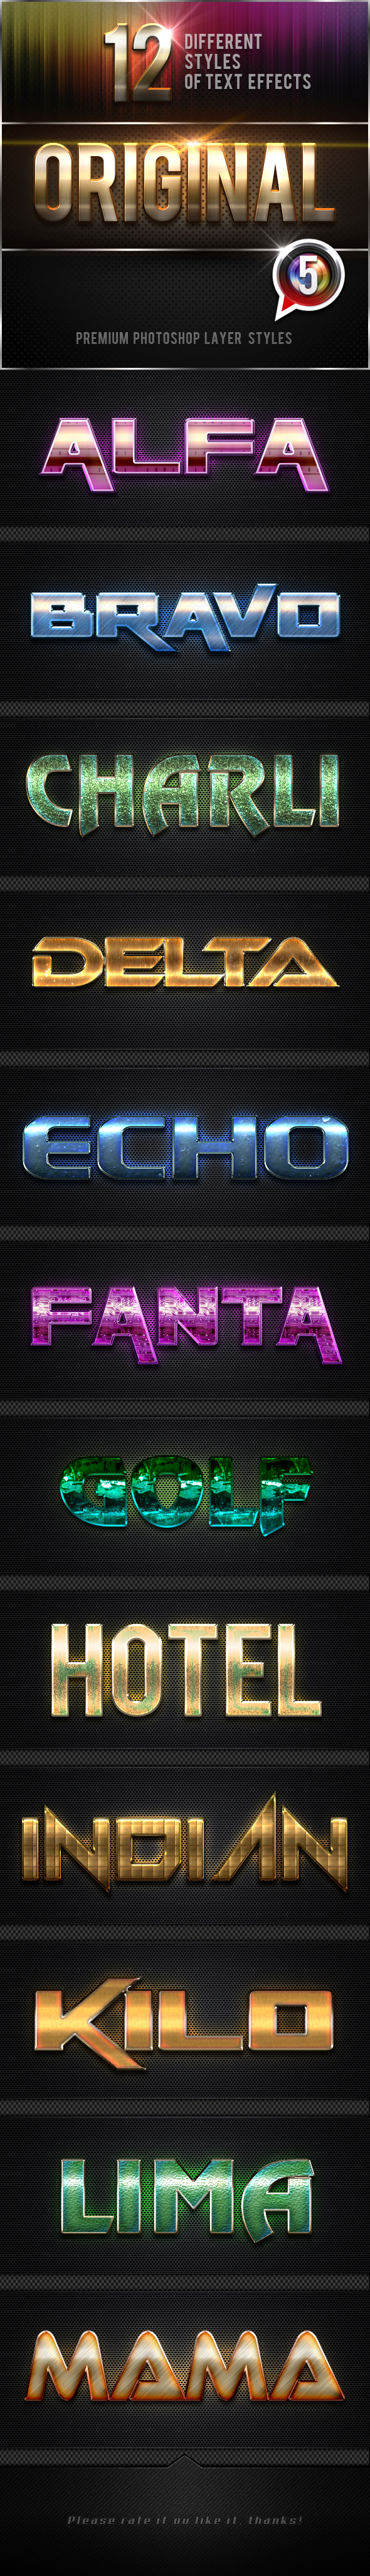 12 Original Photoshop Text Effects Vol.5 - Text Effects Styles